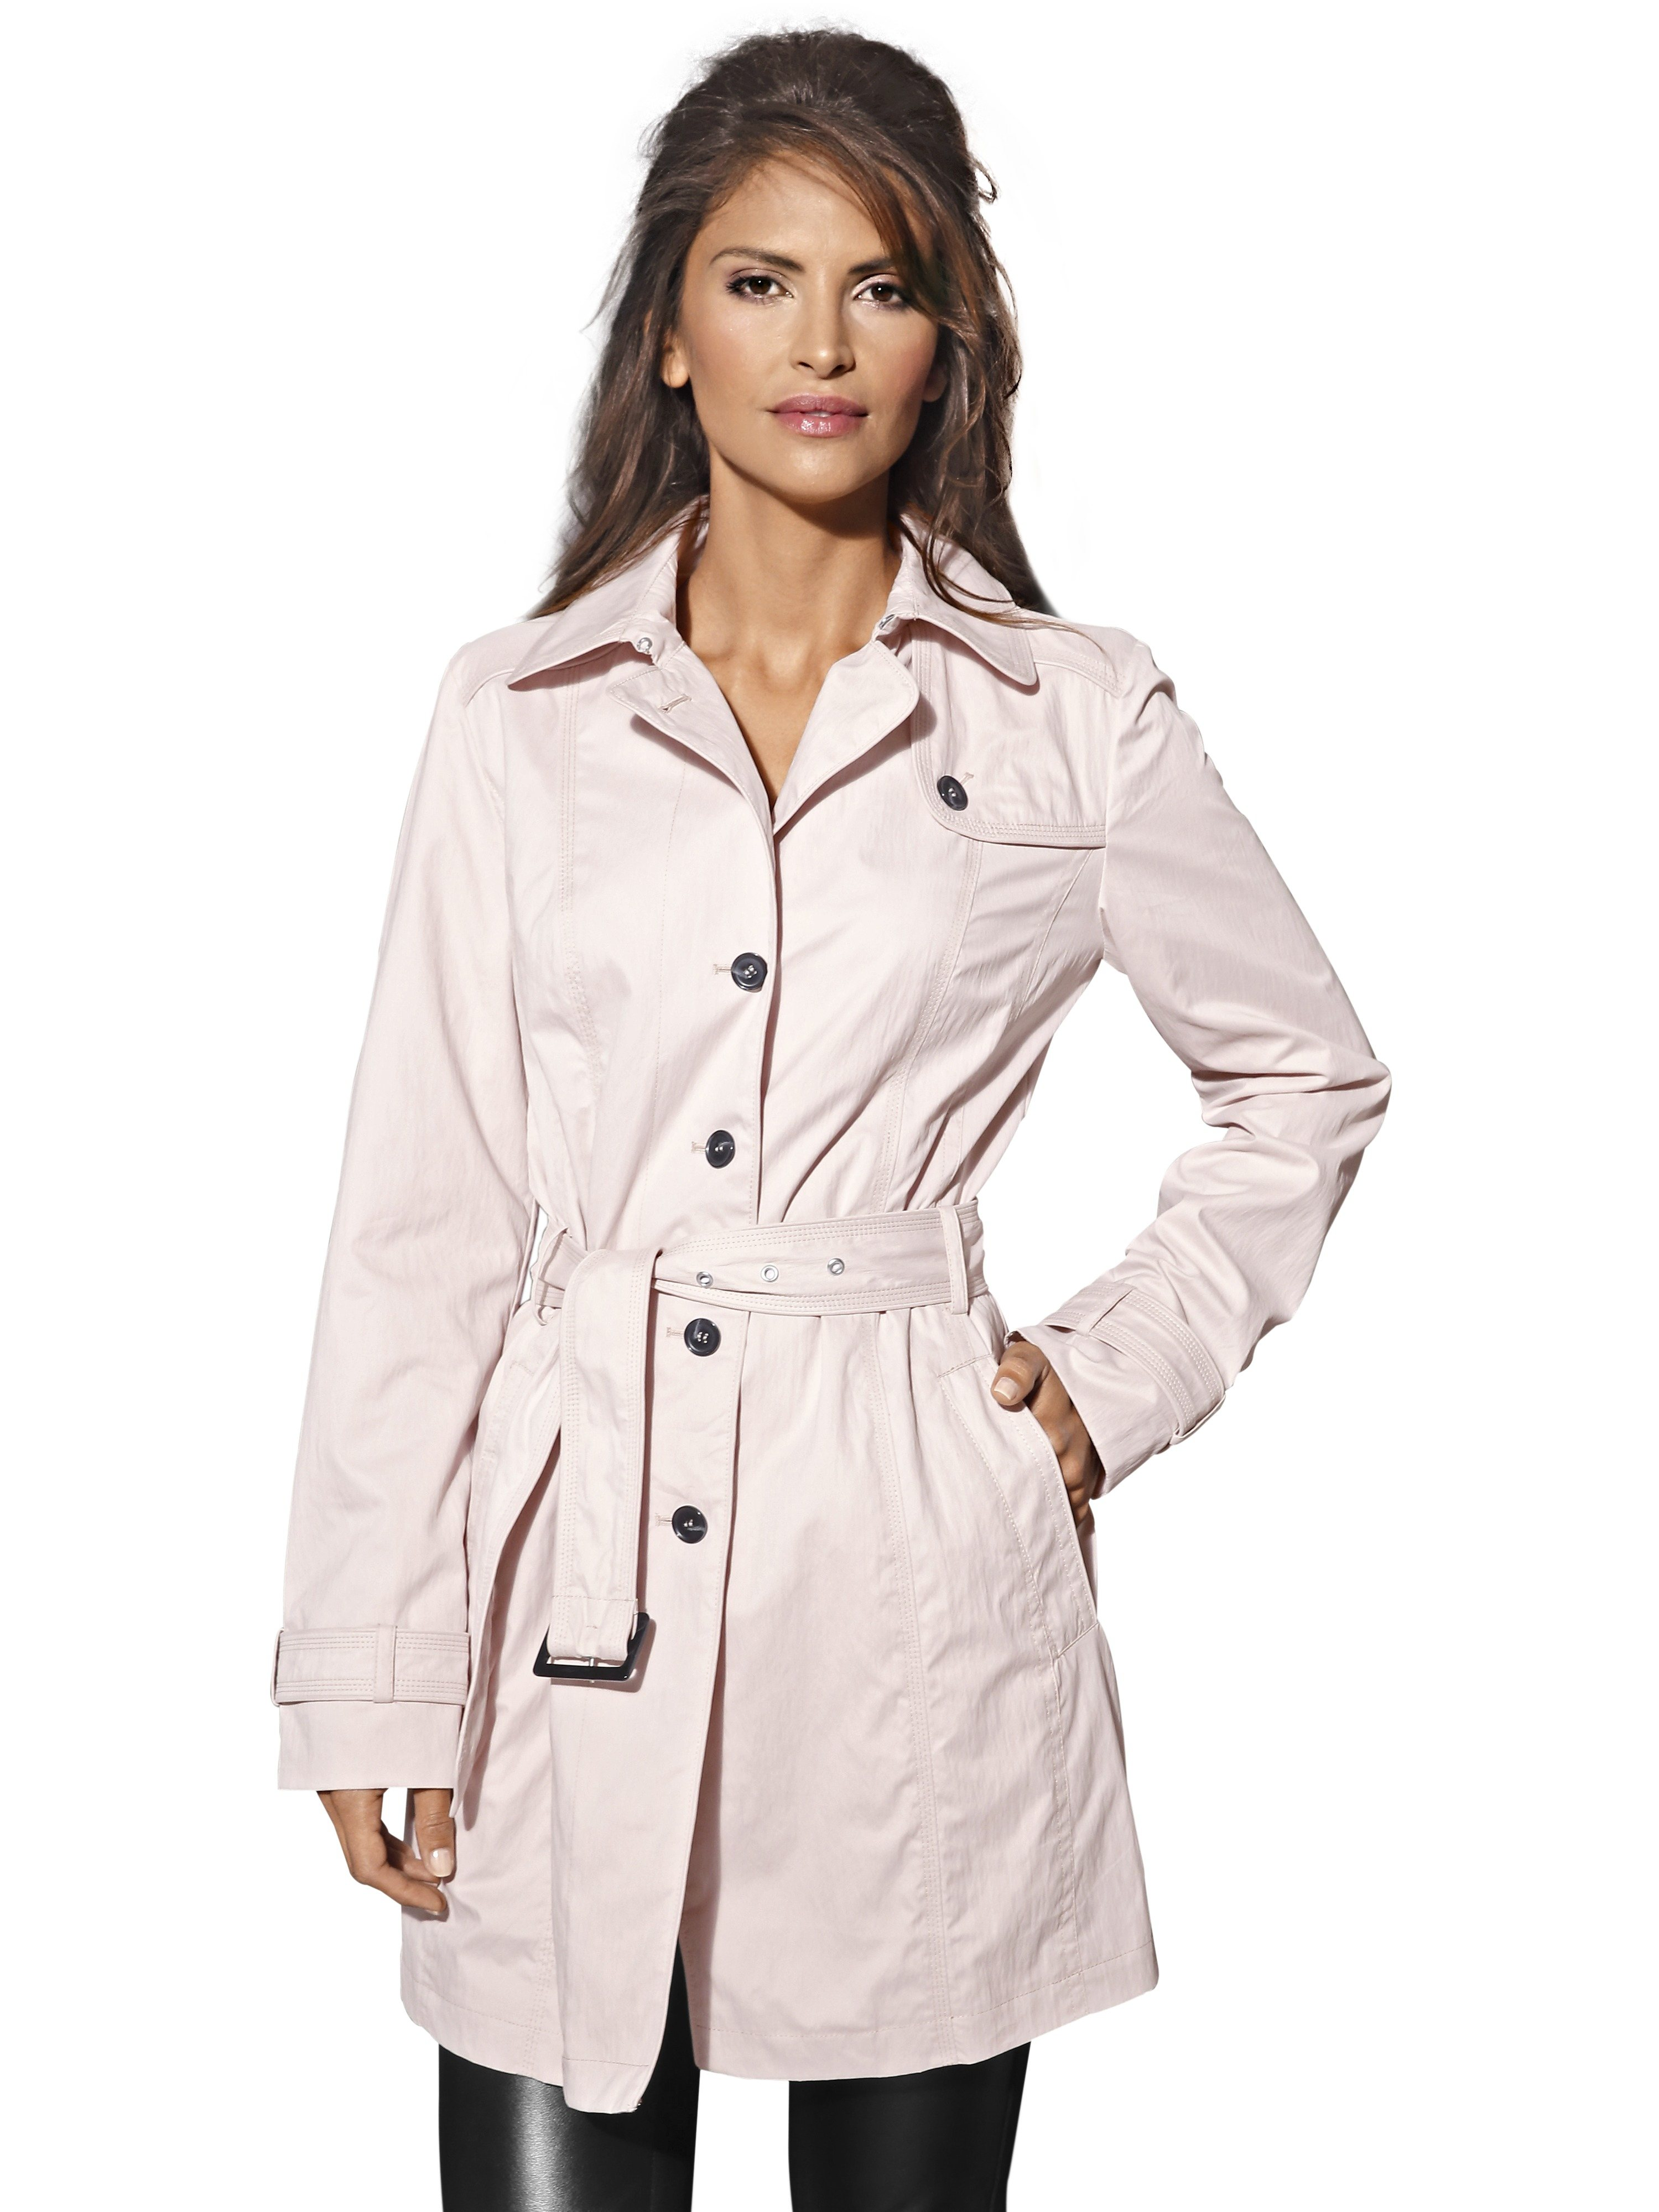 ASHLEY BROOKE by Heine Trenchcoat mit Gürtel | Bekleidung > Mäntel > Trenchcoats | Polyester | ASHLEY BROOKE by Heine